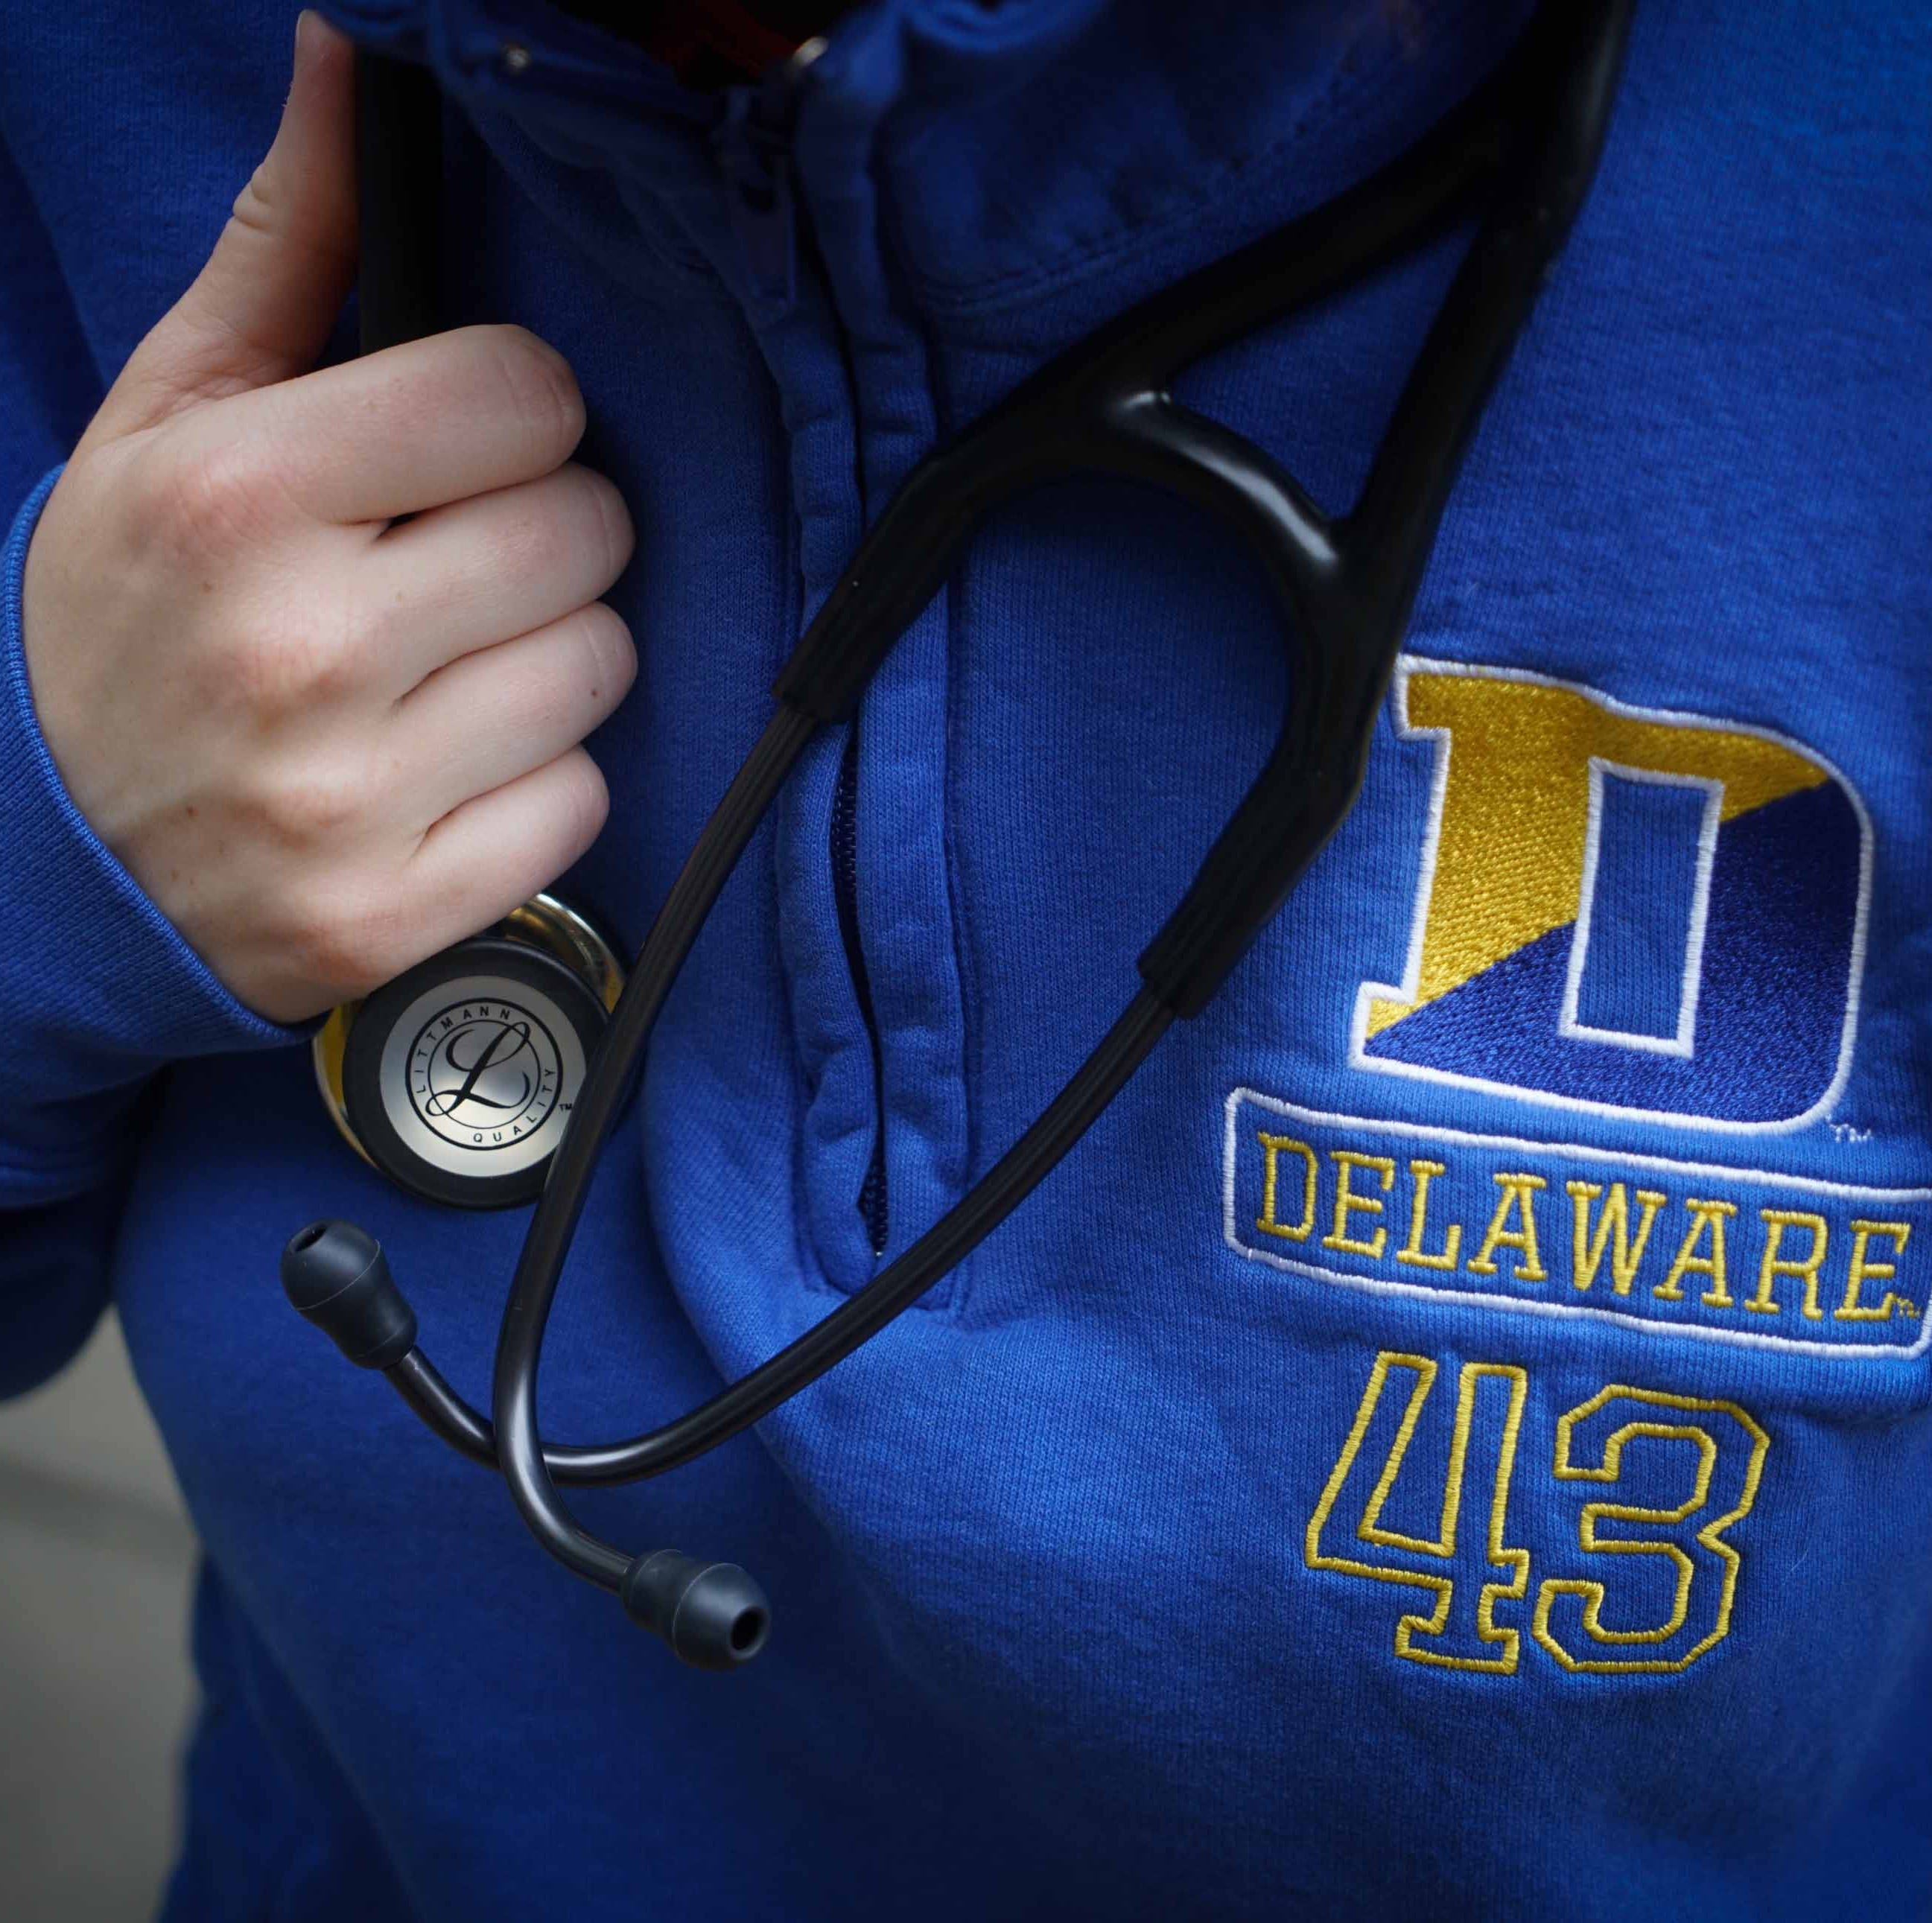 'A University of Delaware student raped me. His punishment: House arrest and community service'